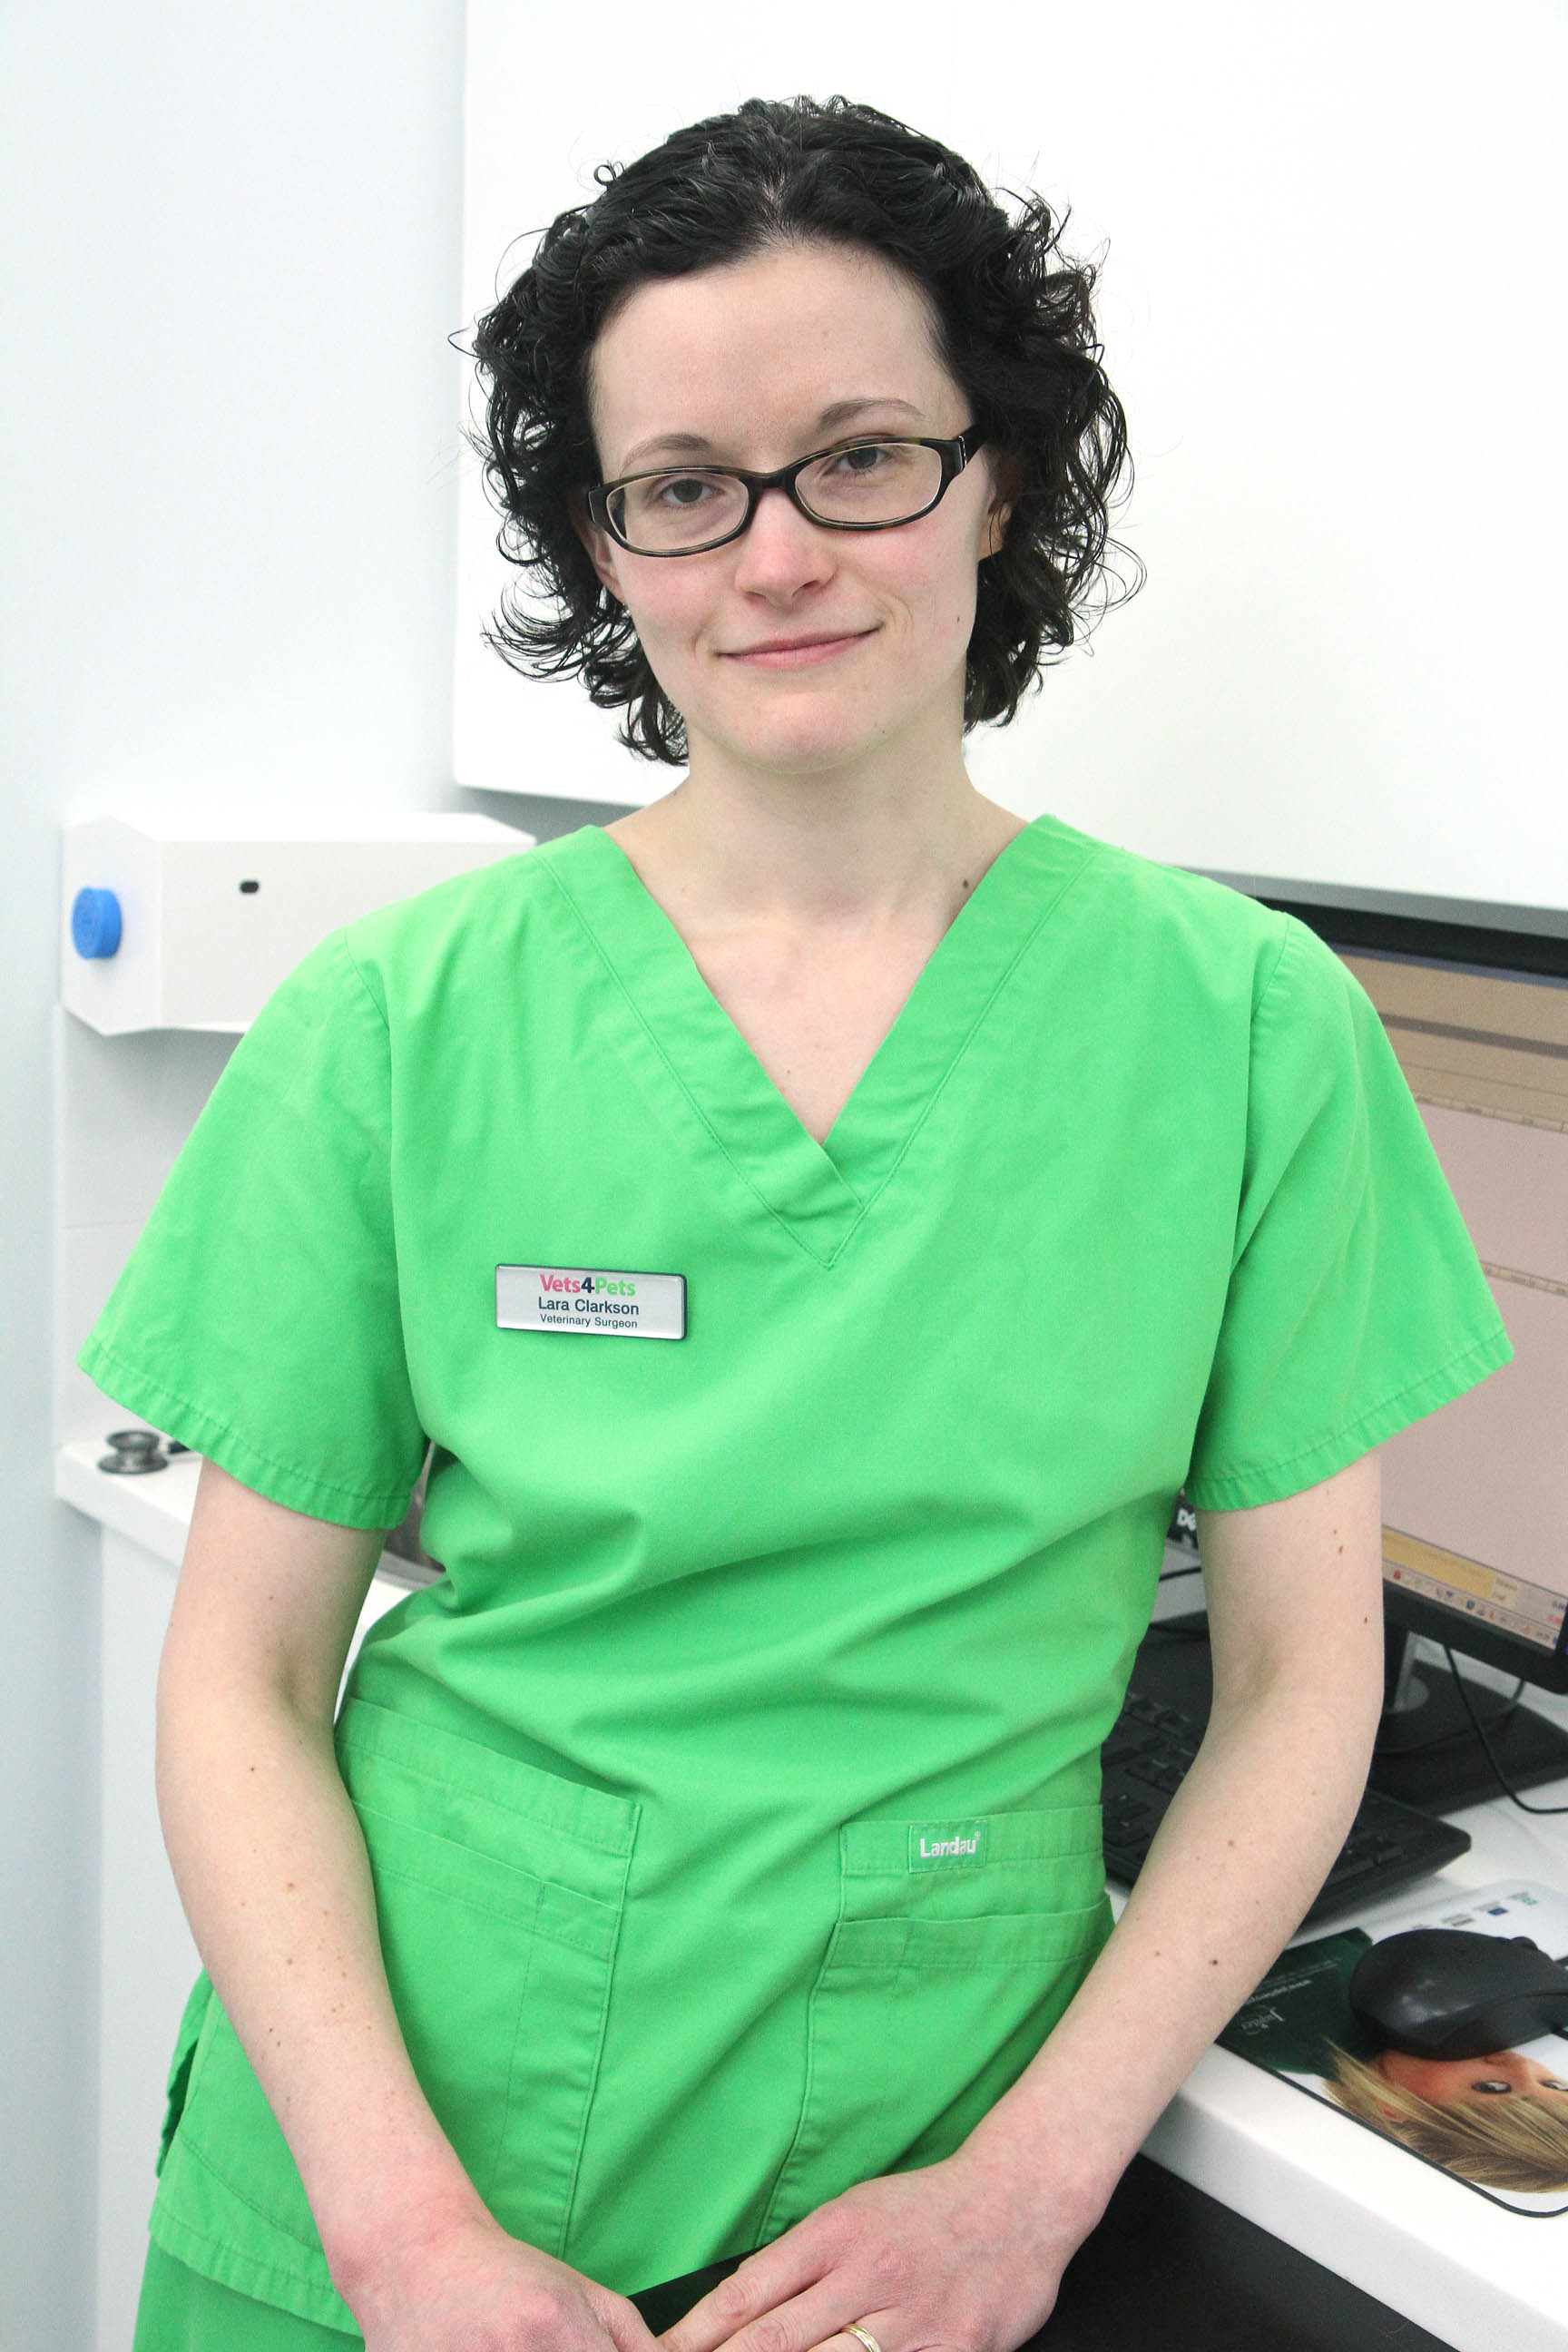 Vet Lara Clarkson, of Keighley Vets4Pets, who had to put down an illegally imported dog amid fears it could have rabies